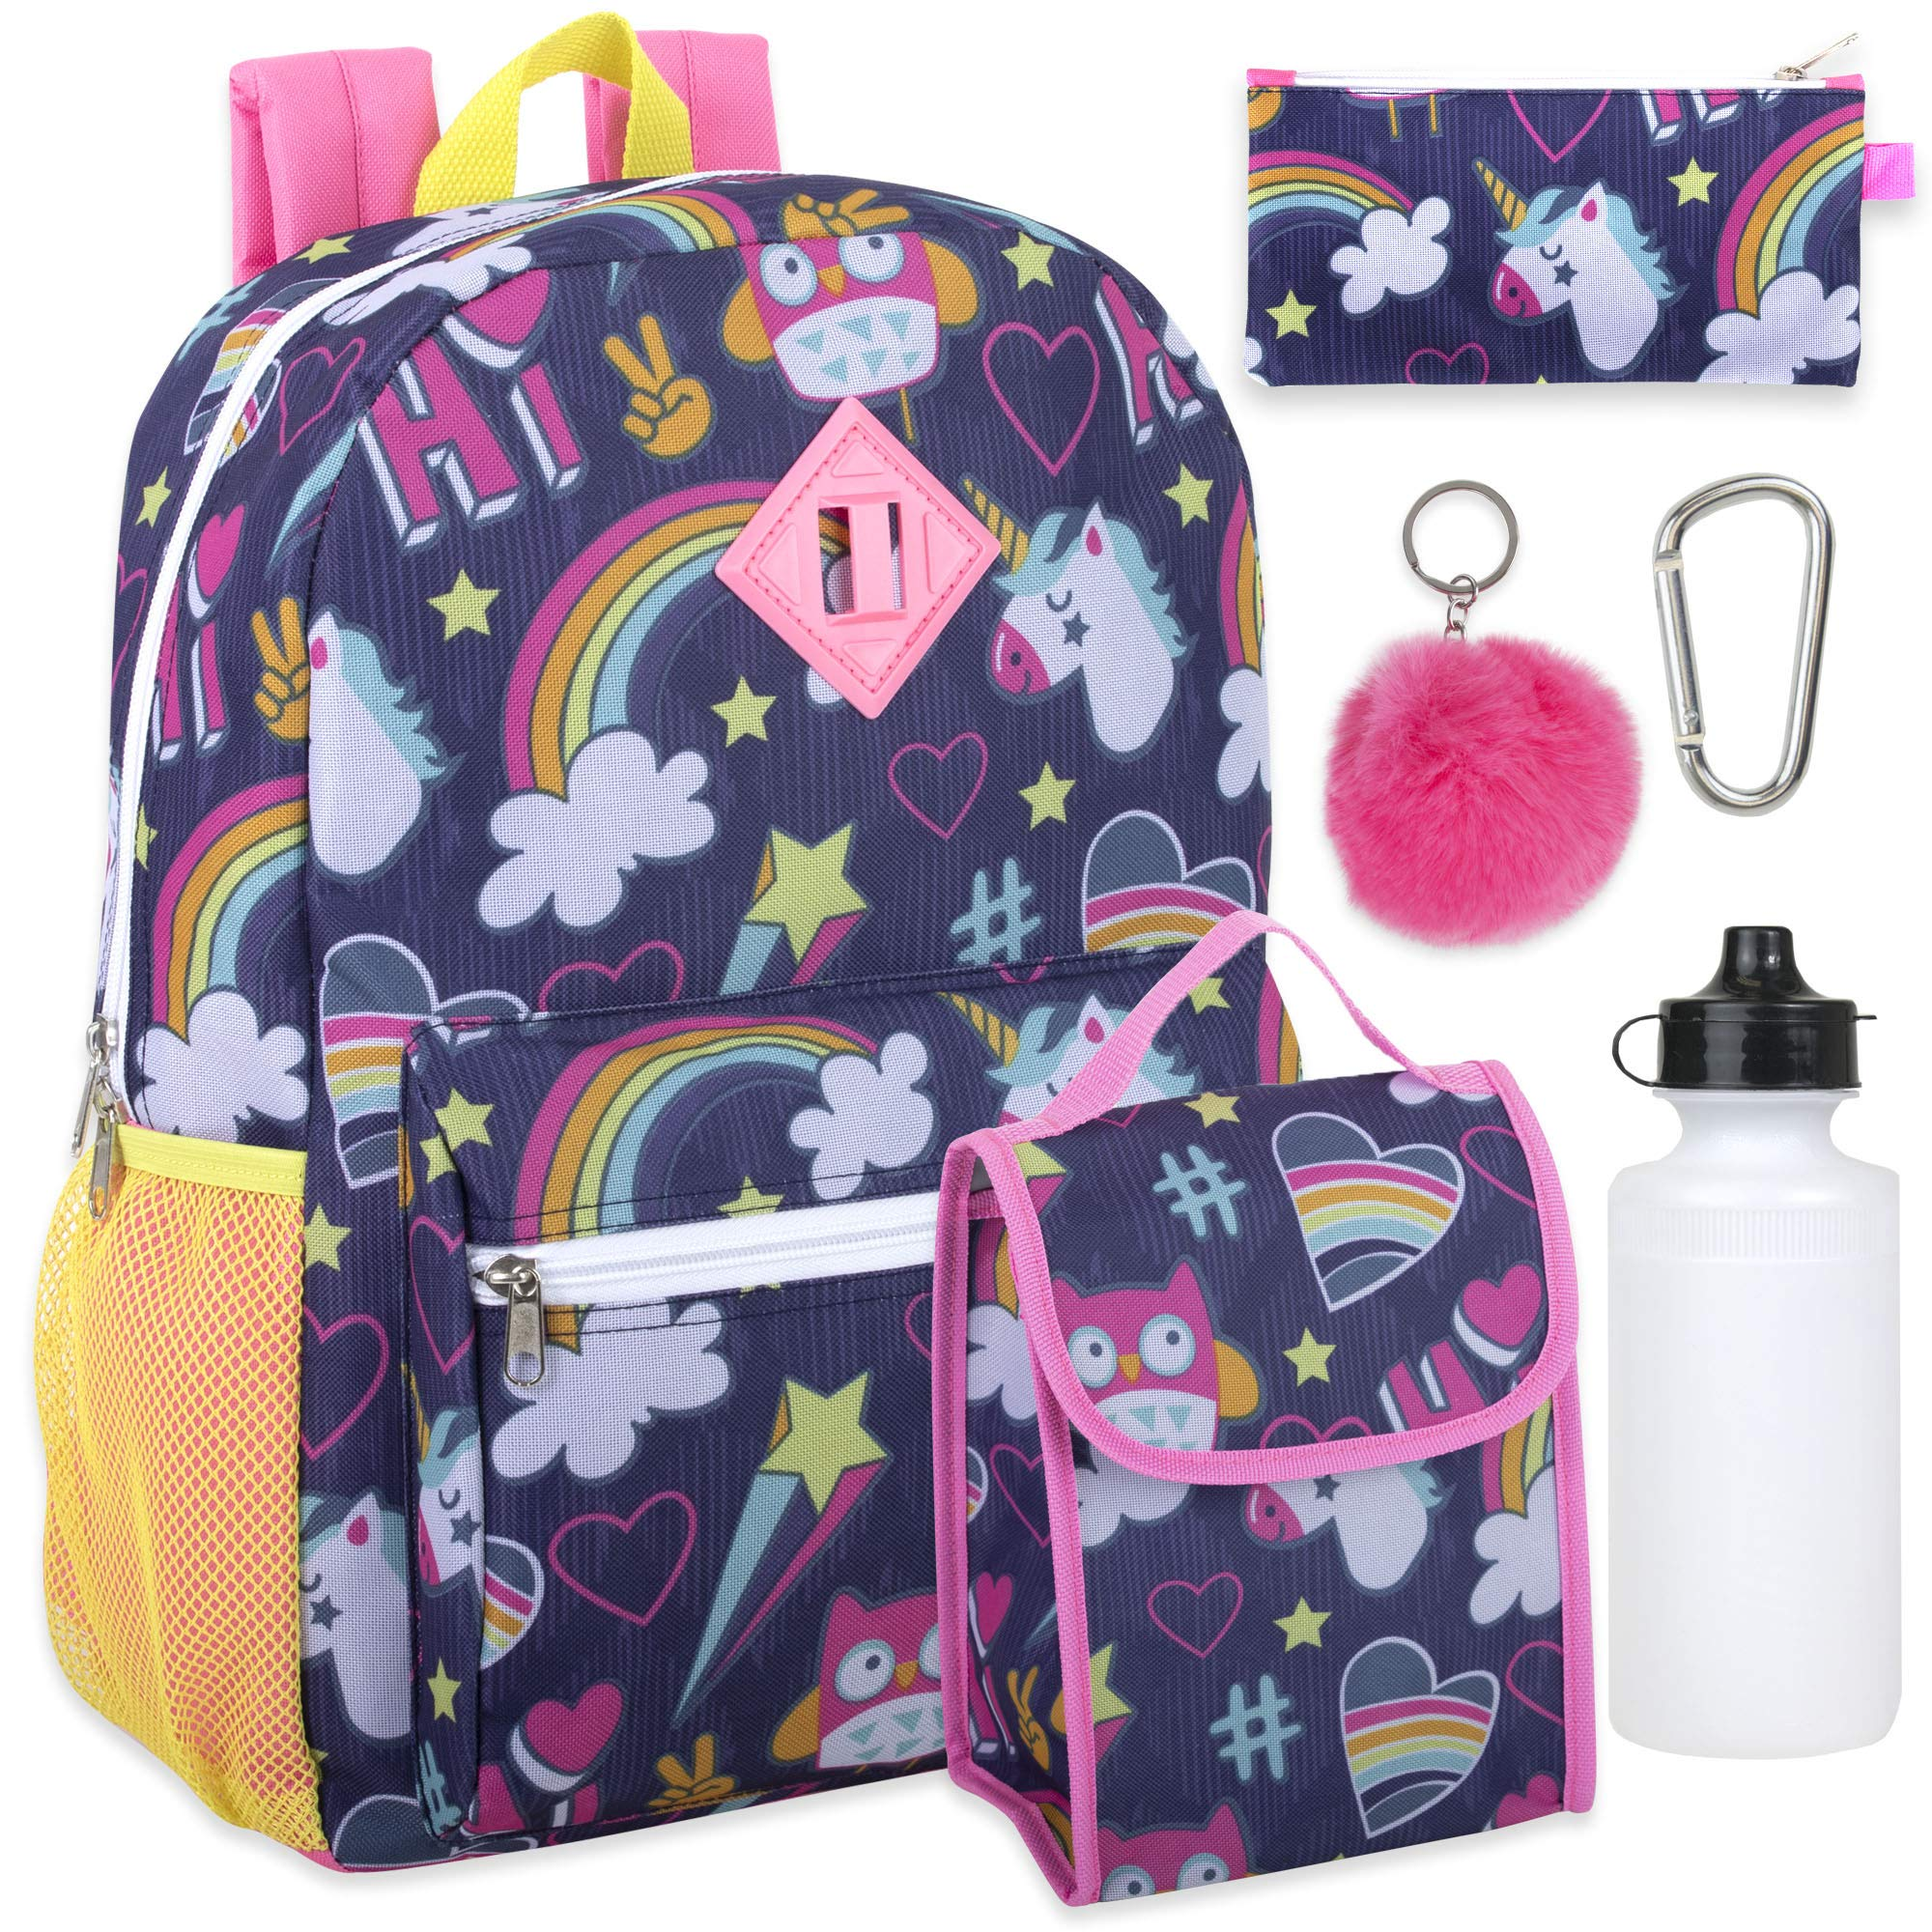 Backpack Pencil Bottle Keychain Unicorn